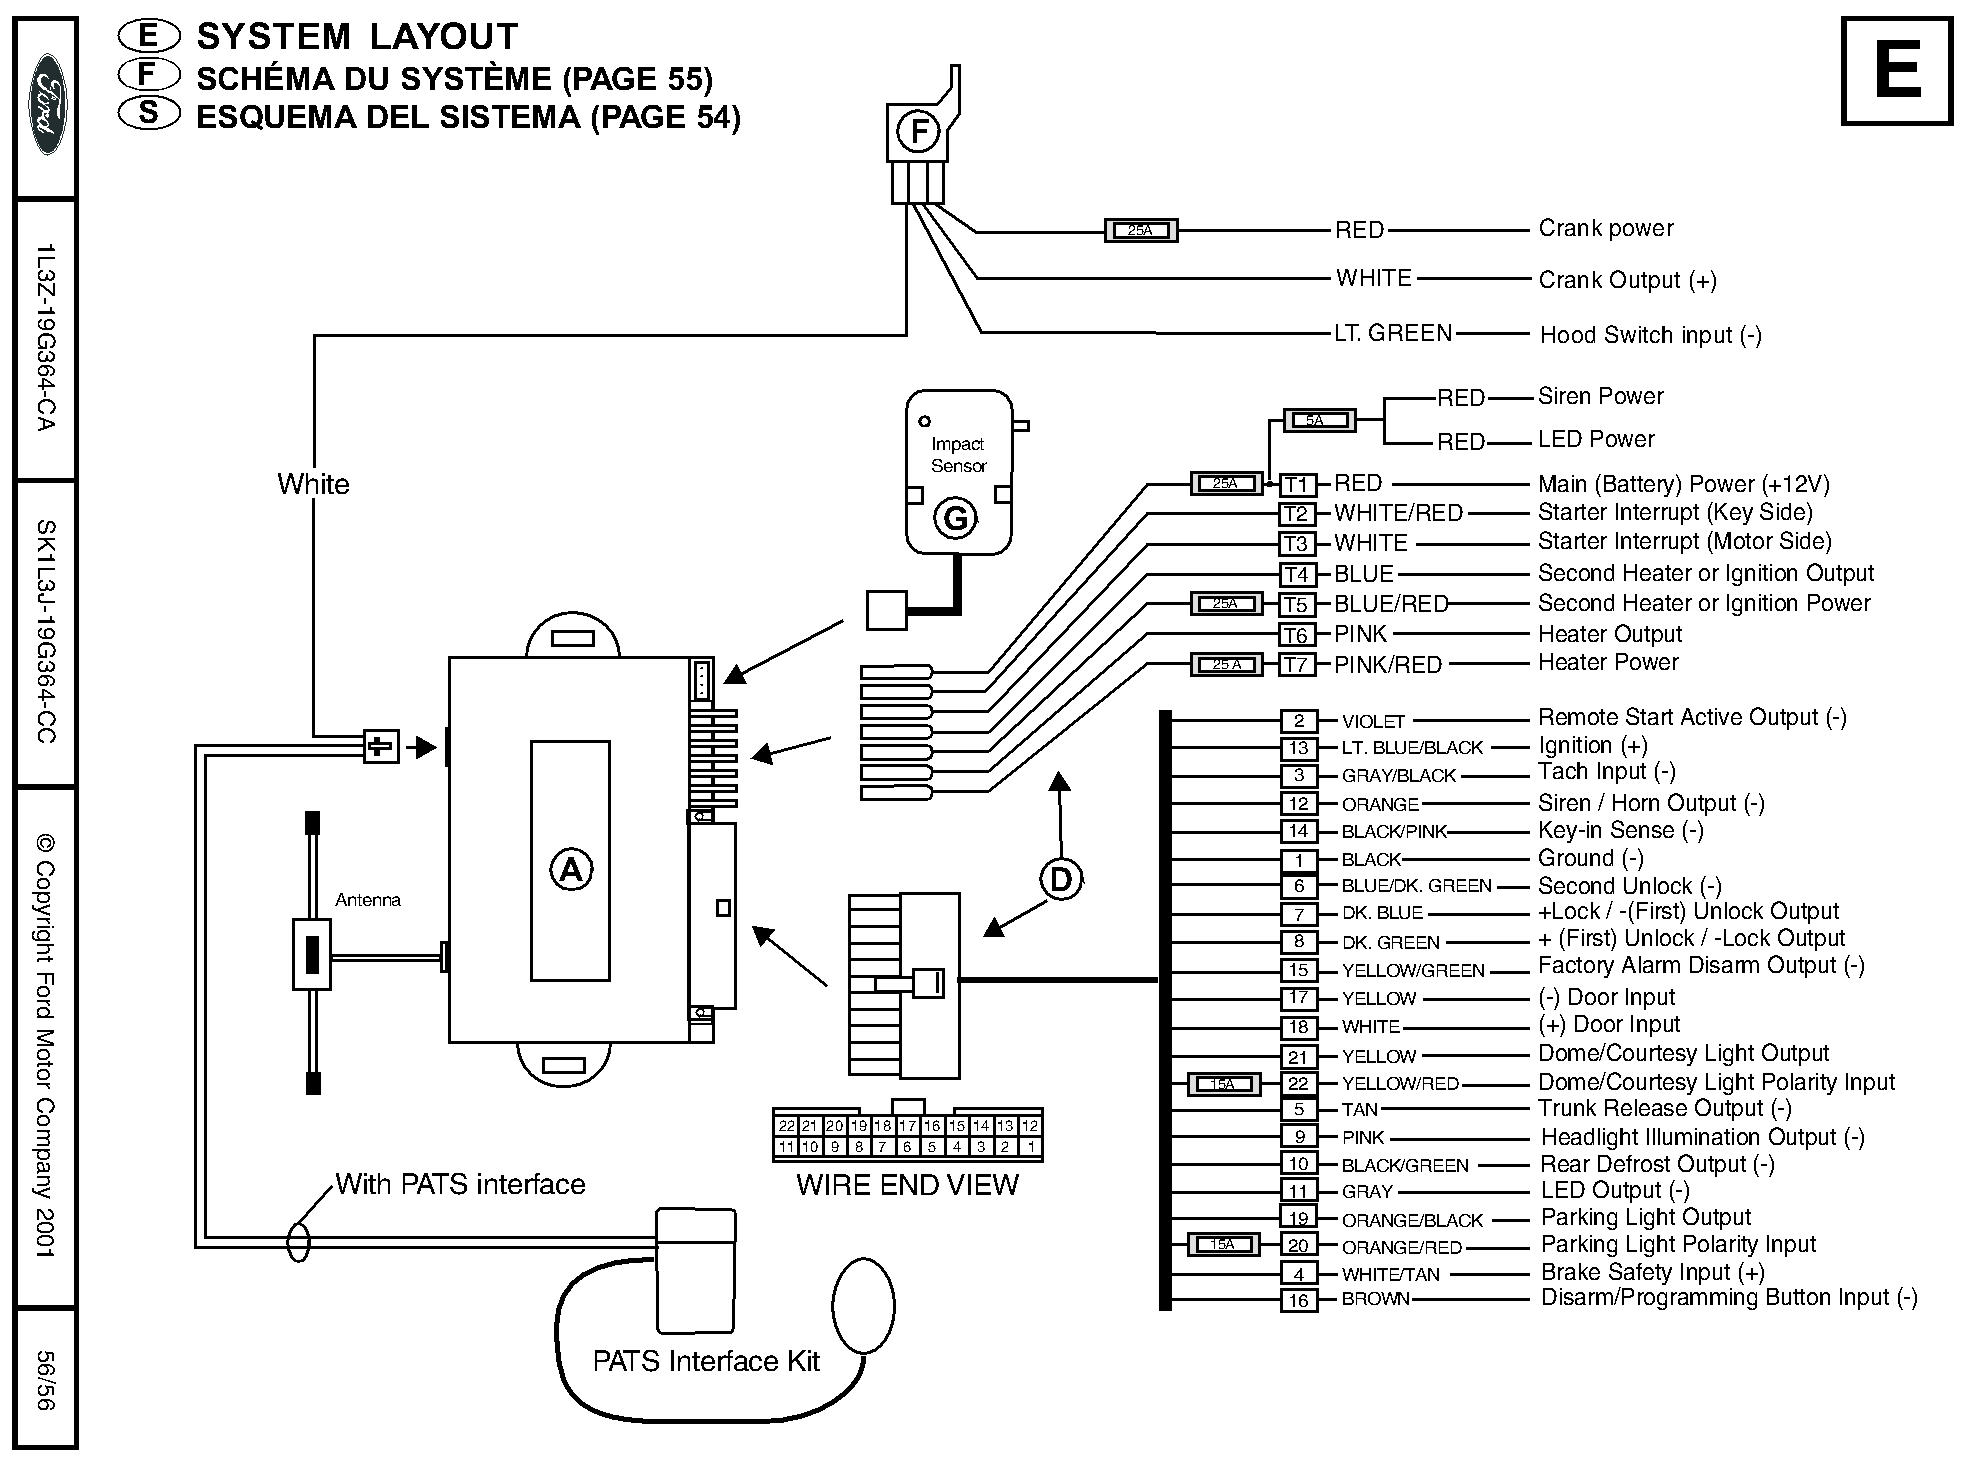 viper remote start wiring diagram  viper  free engine image for user manual download